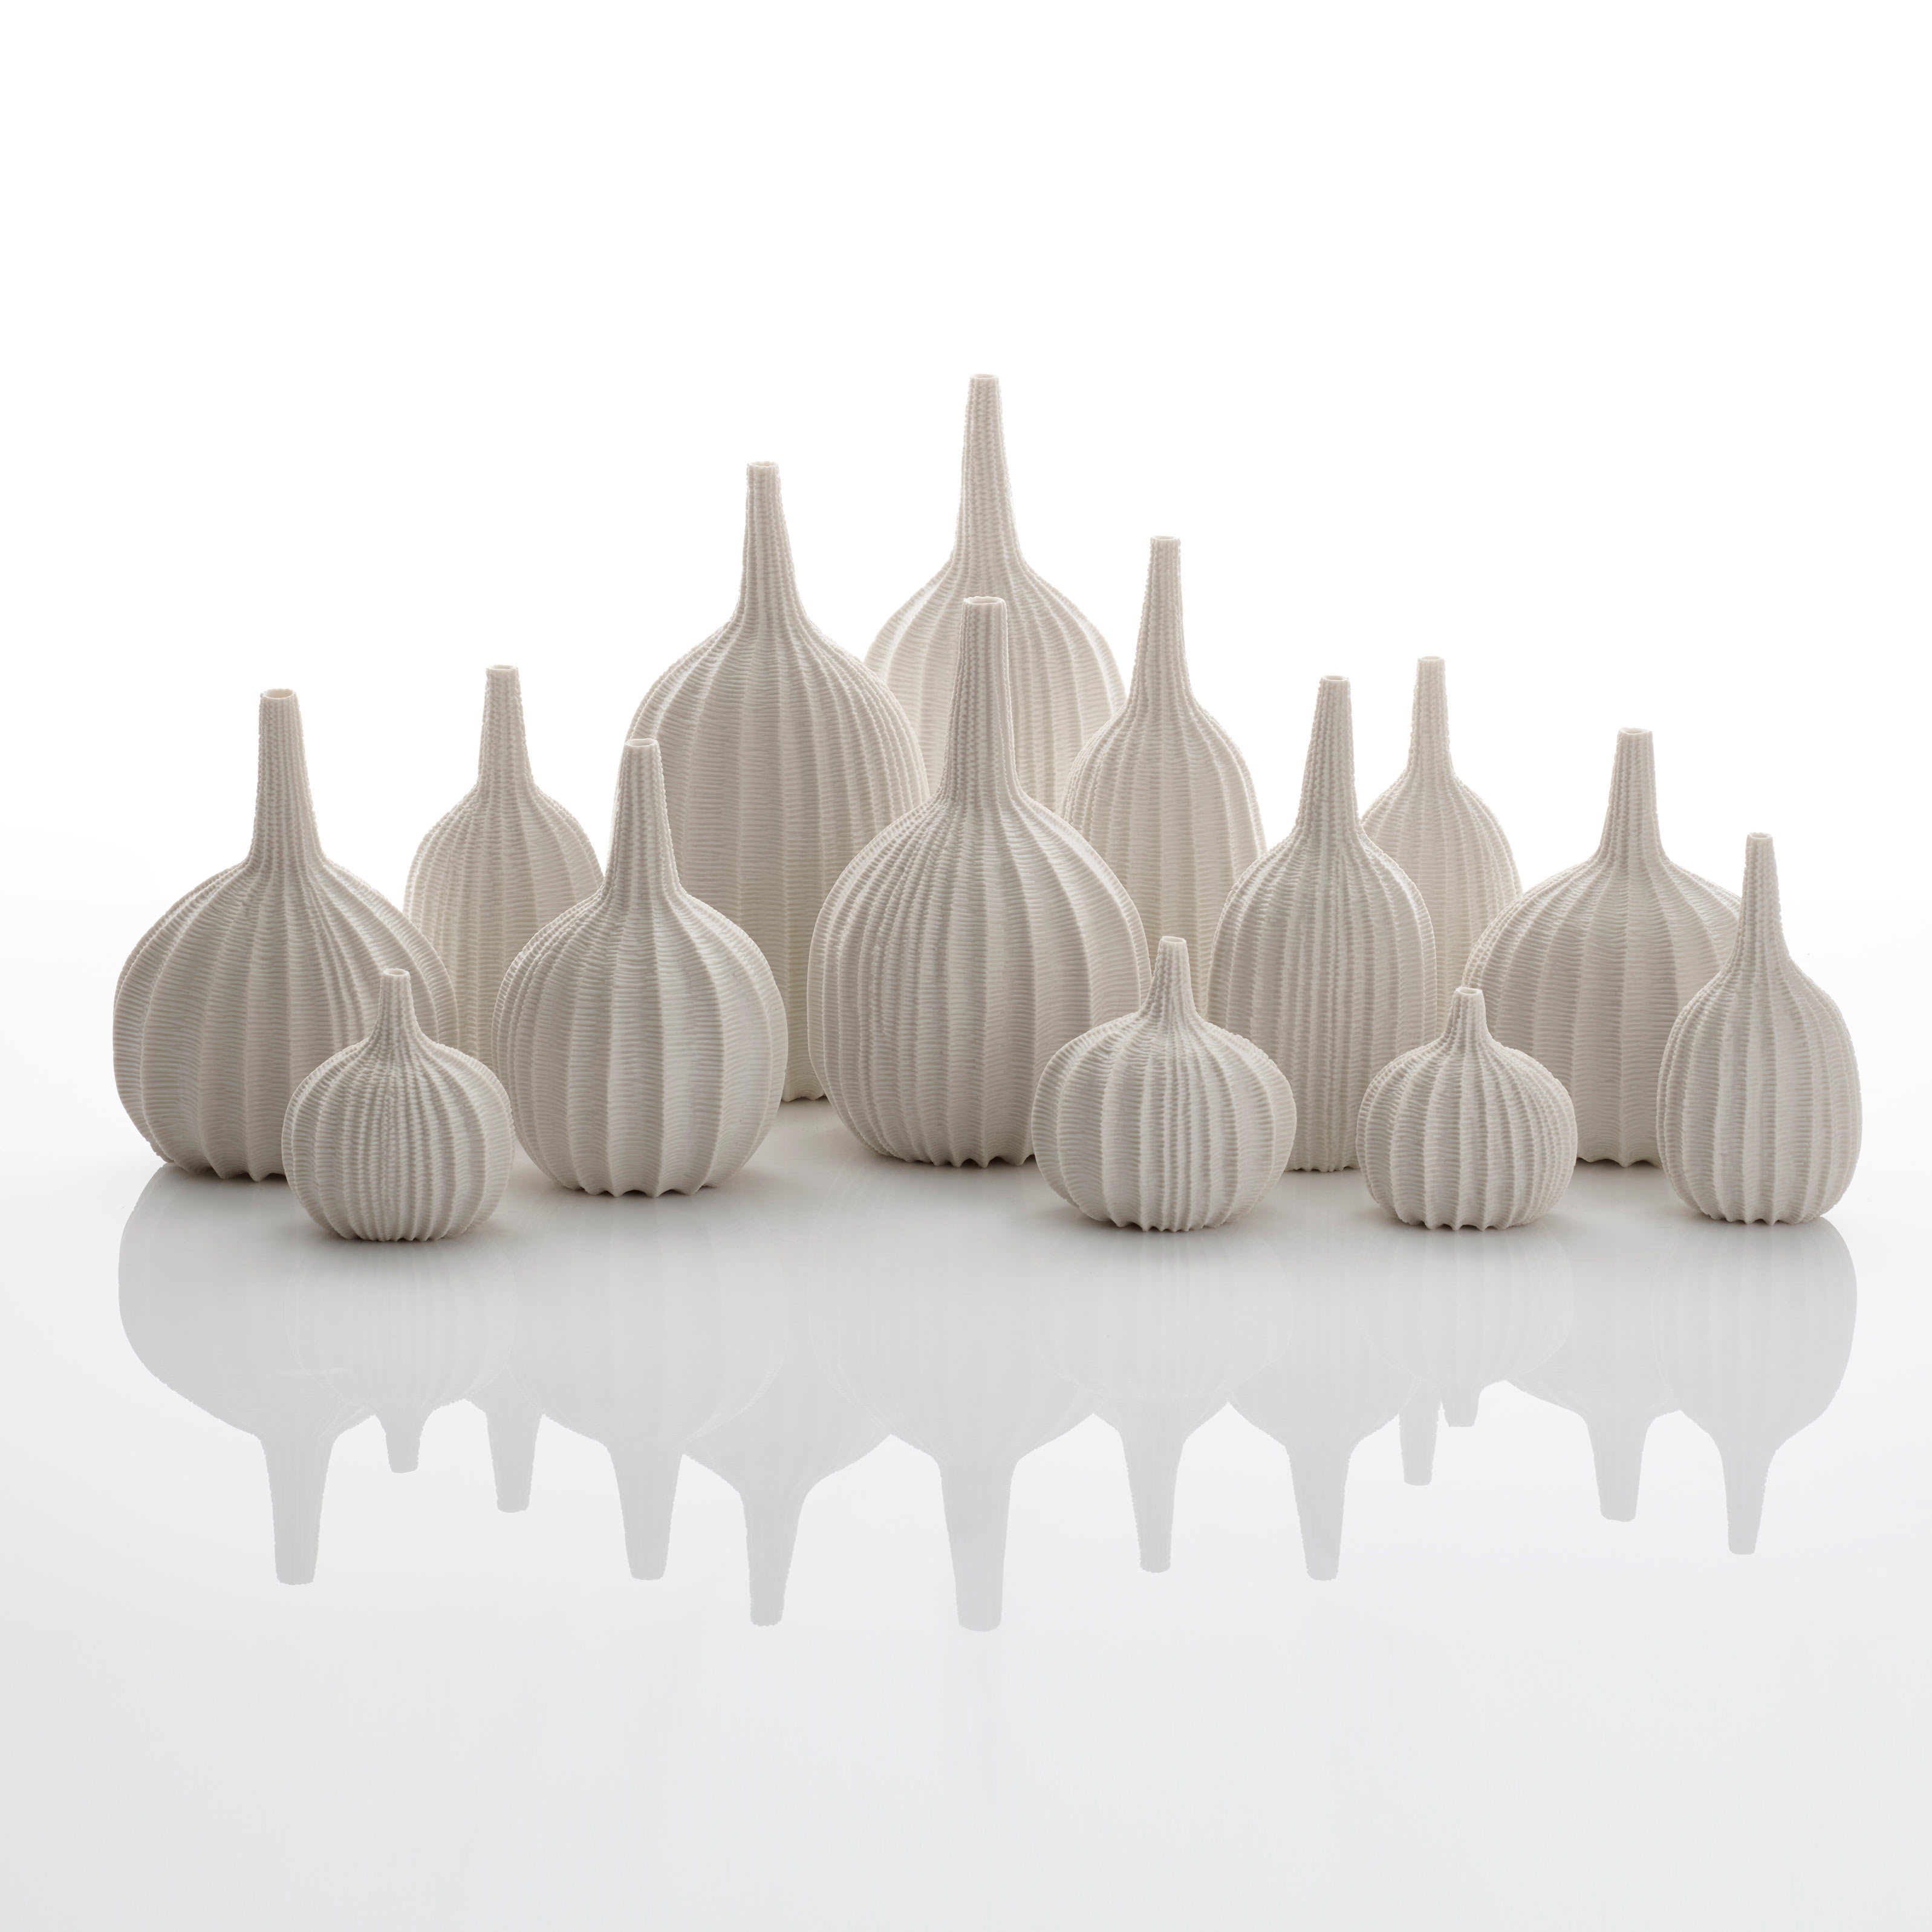 New Adrian Sassoon's Collectible Designs at The Salon Art+Design 2018 - Andrew Wicks - Still Life of Eleven Vases adrian sassoon New Adrian Sassoon's Collectible Designs at The Salon Art+Design 2018 New Adrian Sassoons Collectible Designs at The Salon ArtDesign 2018 Andrew Wicks Still Life of Eleven Vases